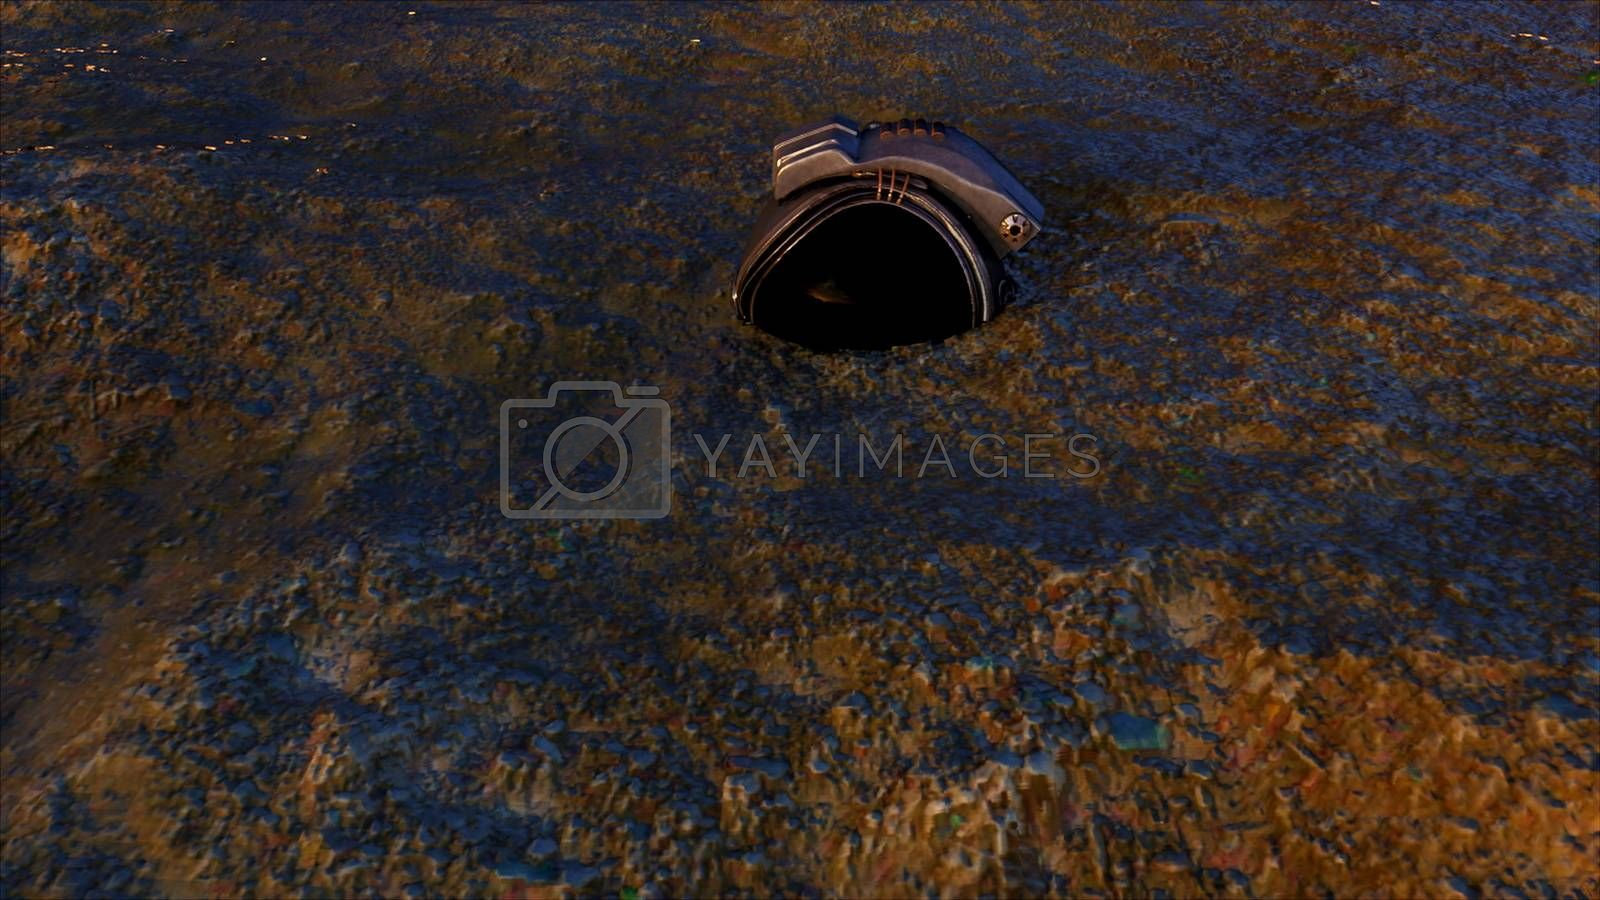 Metallic helmet of an astronaut on the sand. Lighted item. Computer generated space backdrop, 3D rendering